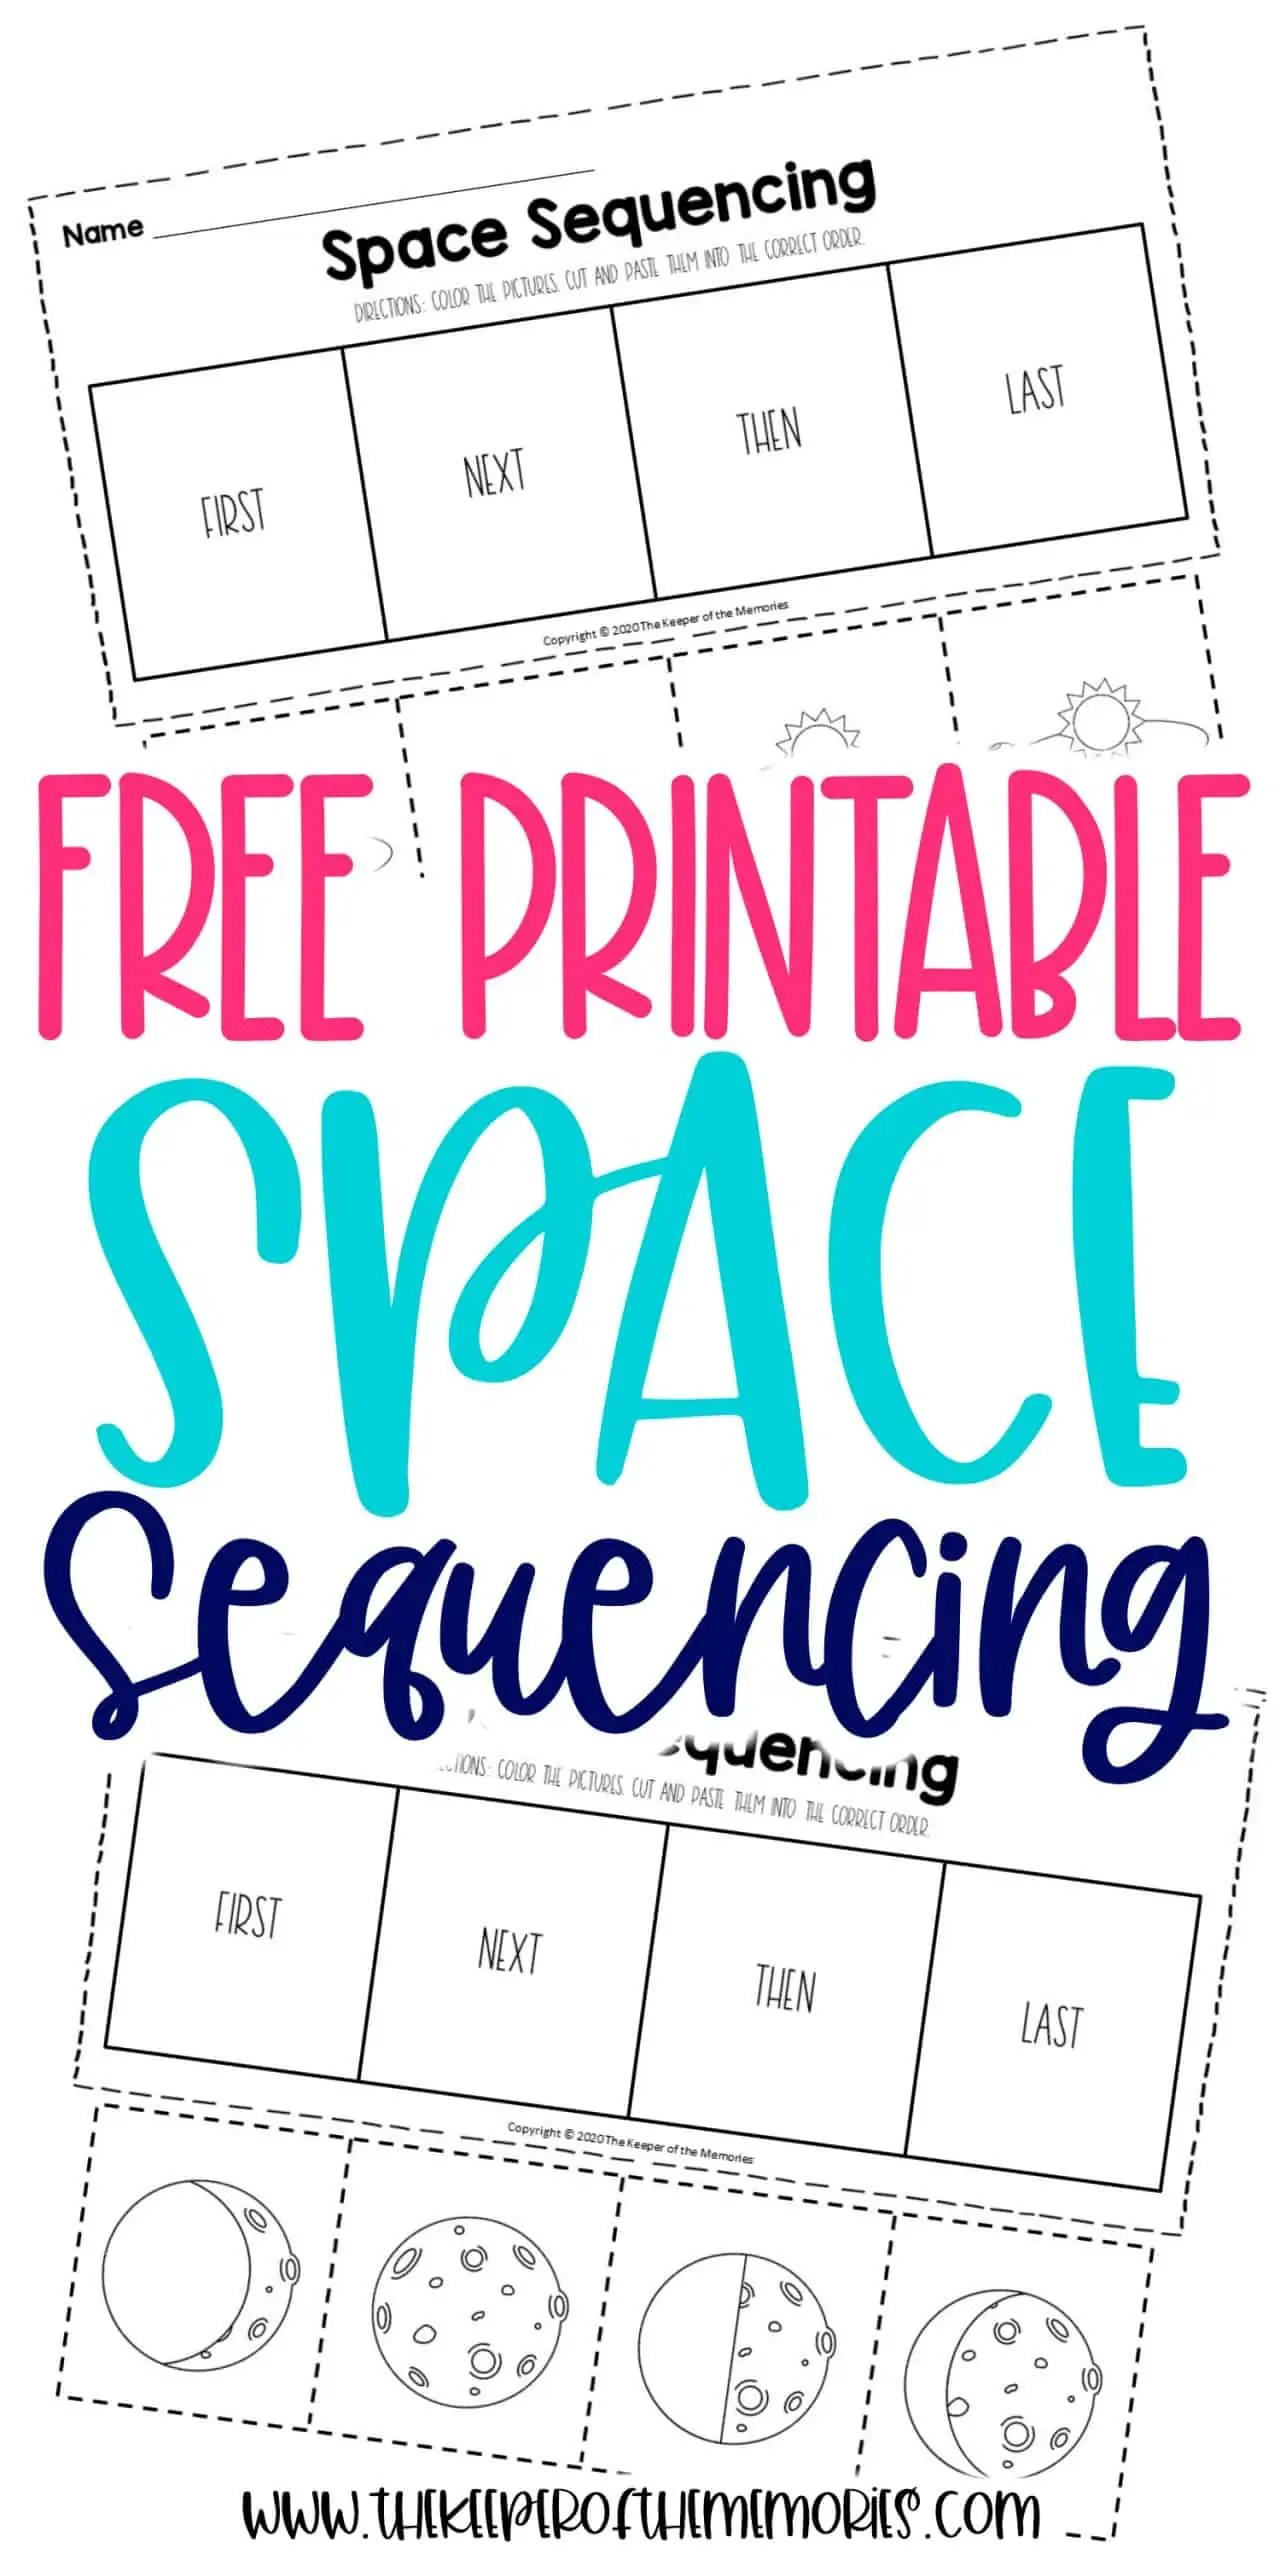 Space Sequencing Worksheets